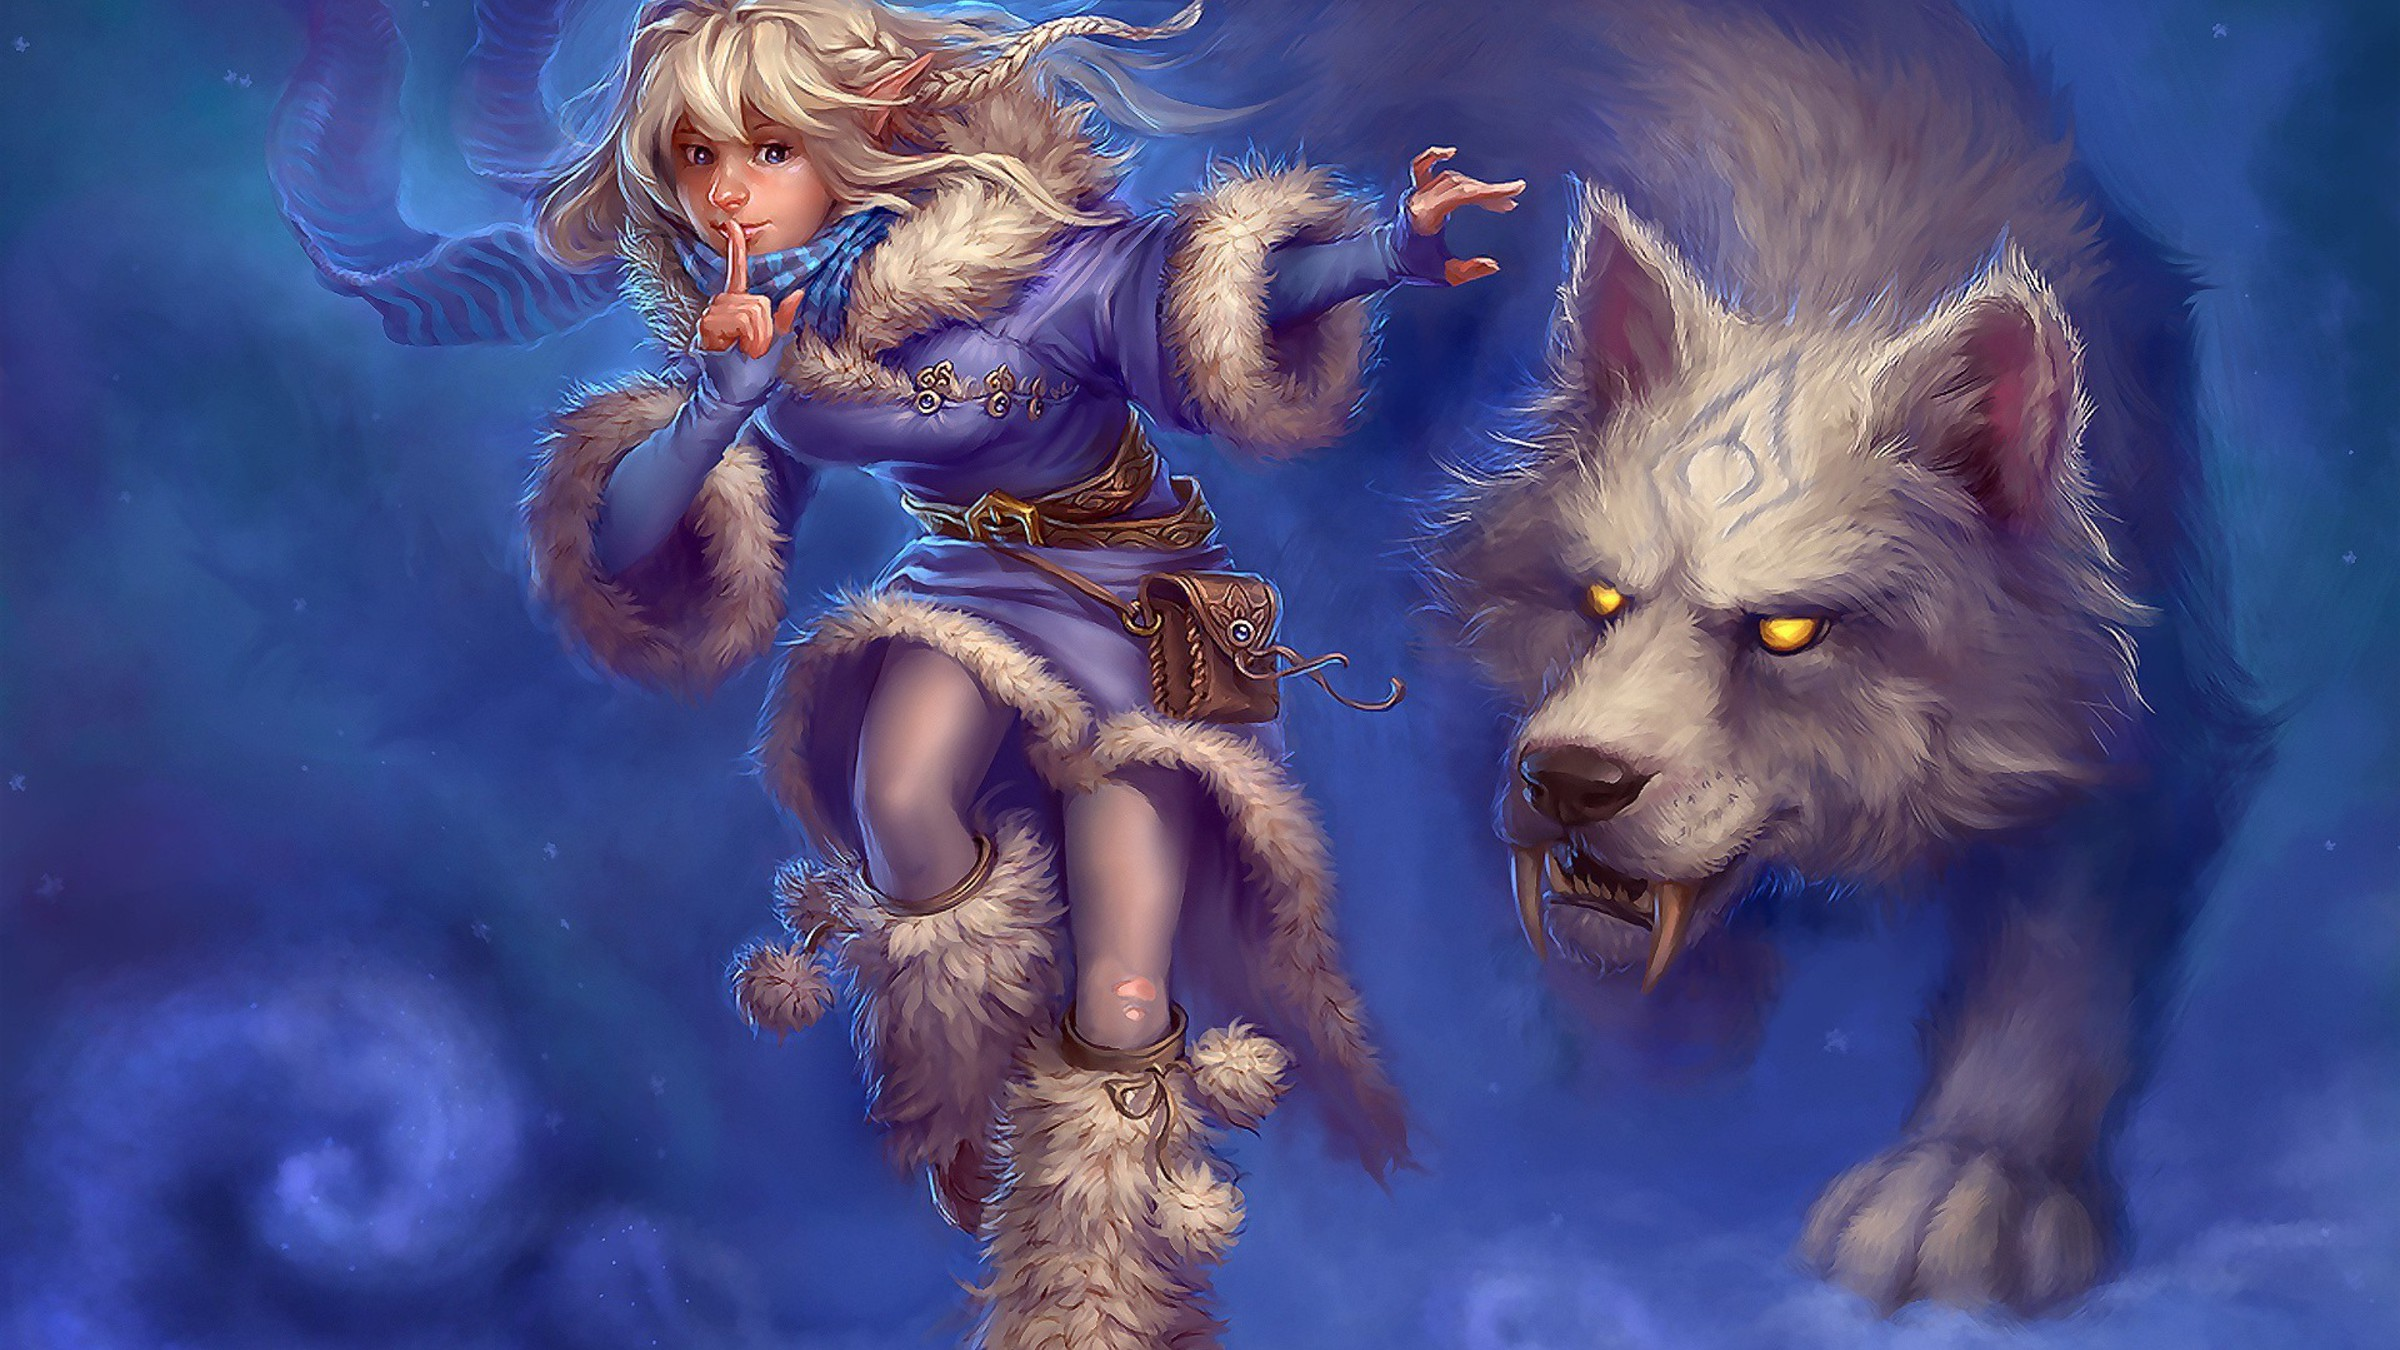 Artwork Blondes Magic Snow Wolves Wallpaper